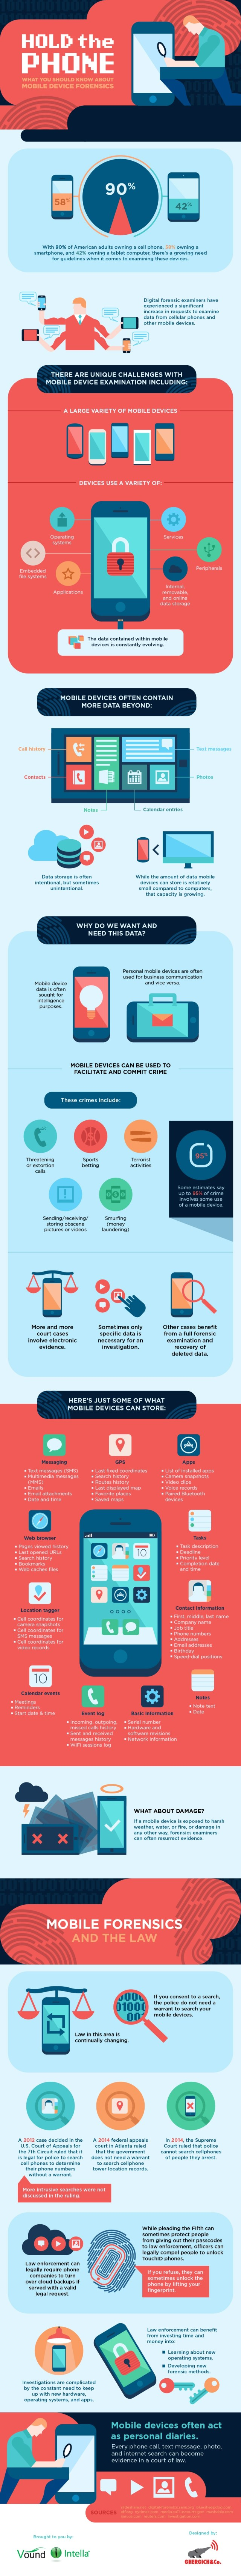 hold-the-phone-what-you-should-know-about-mobile-device-forensics_577d17014098b